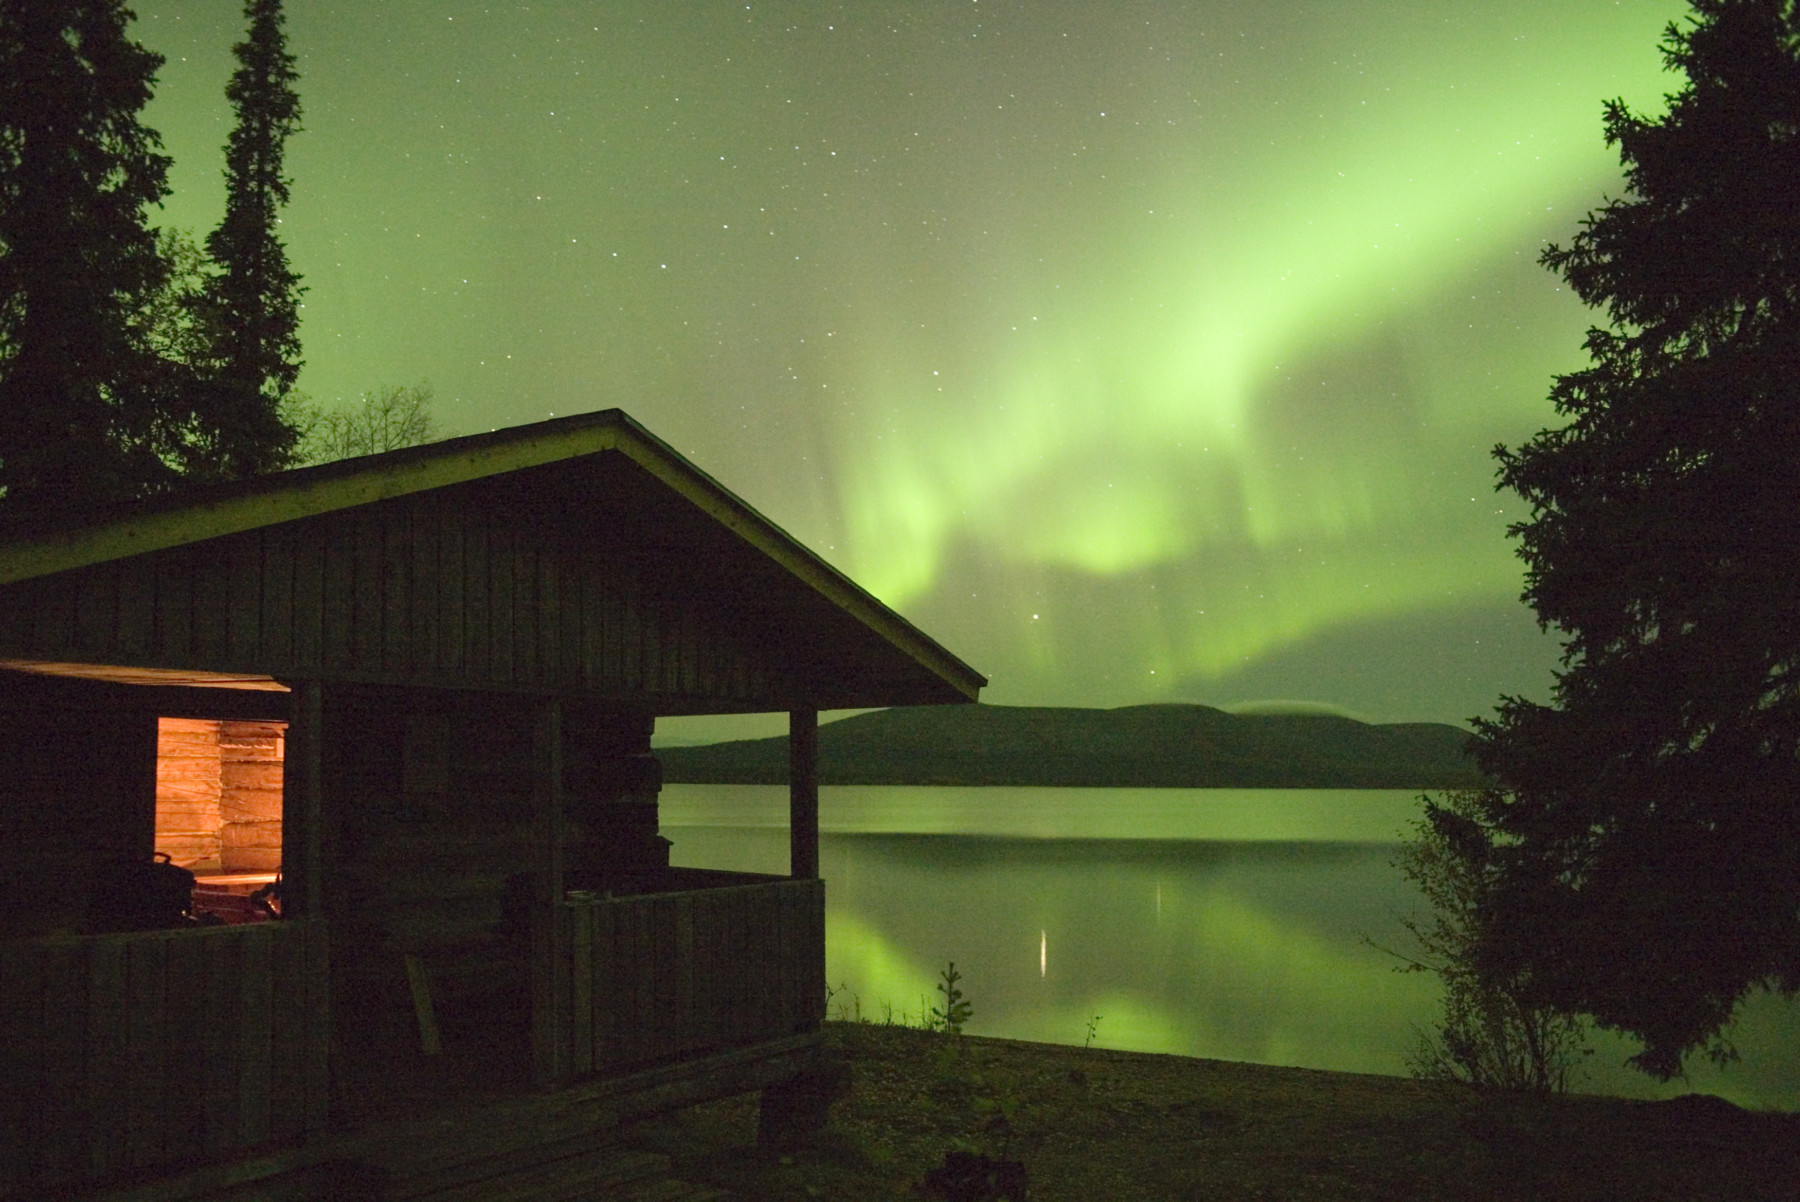 A cabin by a lake at night, with the sky full of wavy green patterns from the Northern Lights.